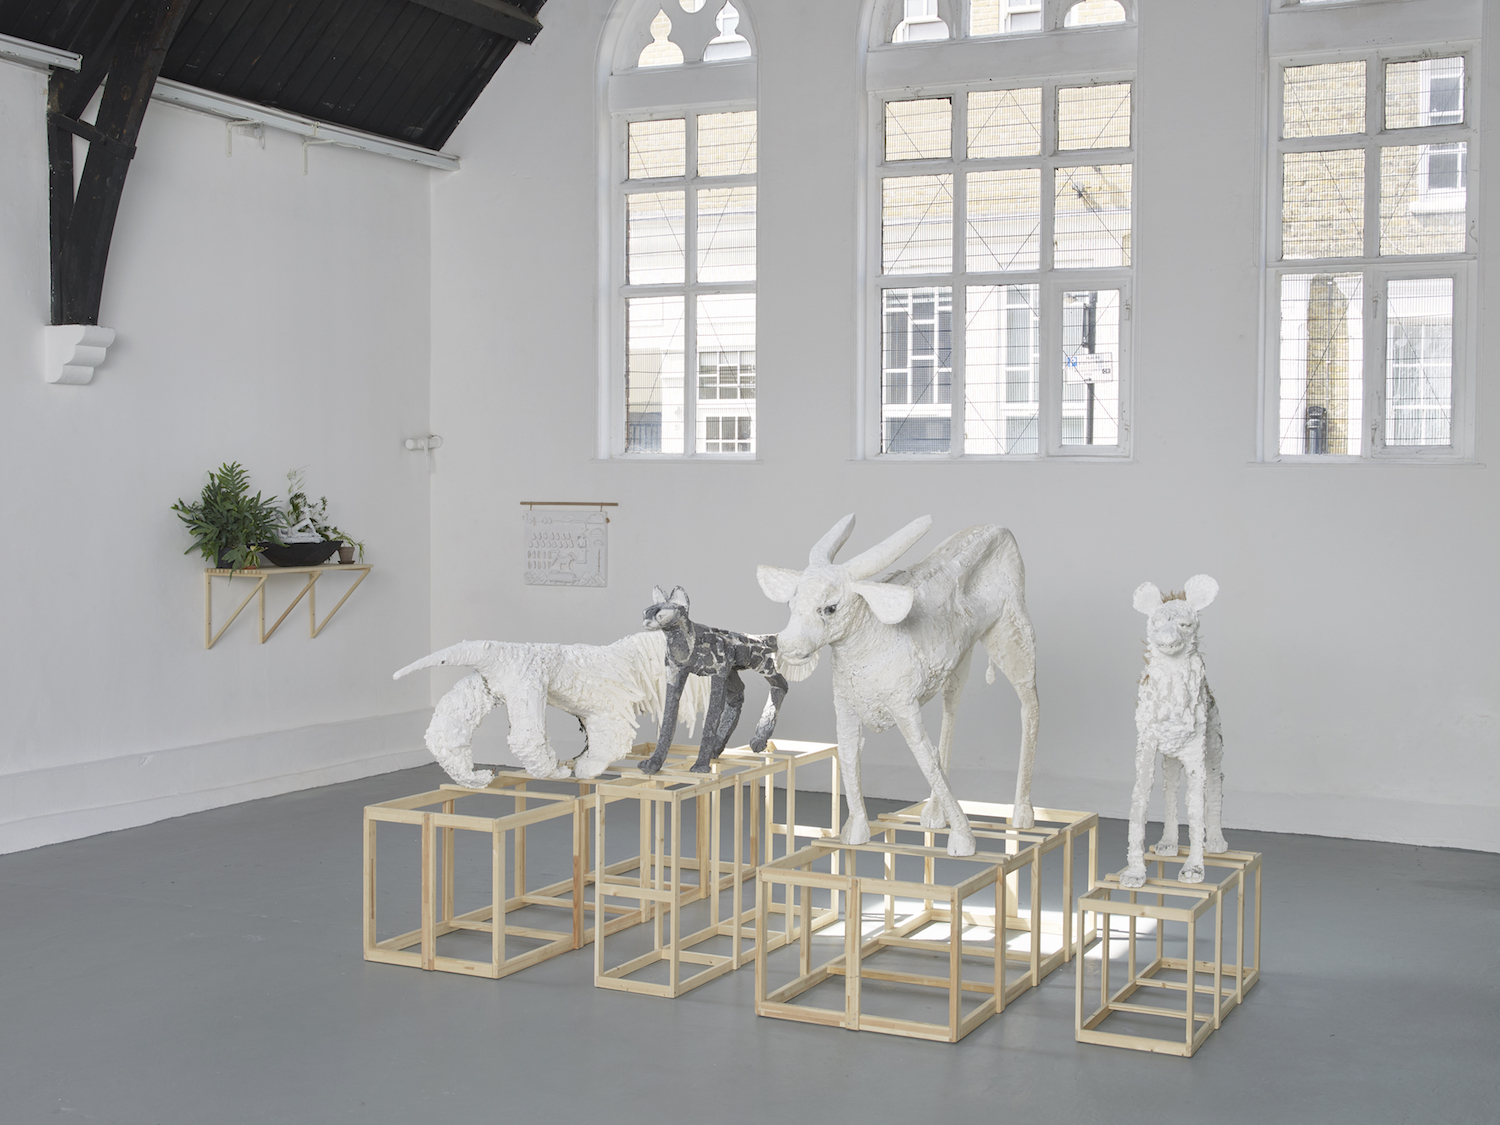 Lin May Saeed, Biene, Installation View, Studio Voltaire London, 2018, Courtesy of the artist; Jacky Strenz Galerie, Frankfurt and Nicolas Krupp, Basel. Credit Andy Keate